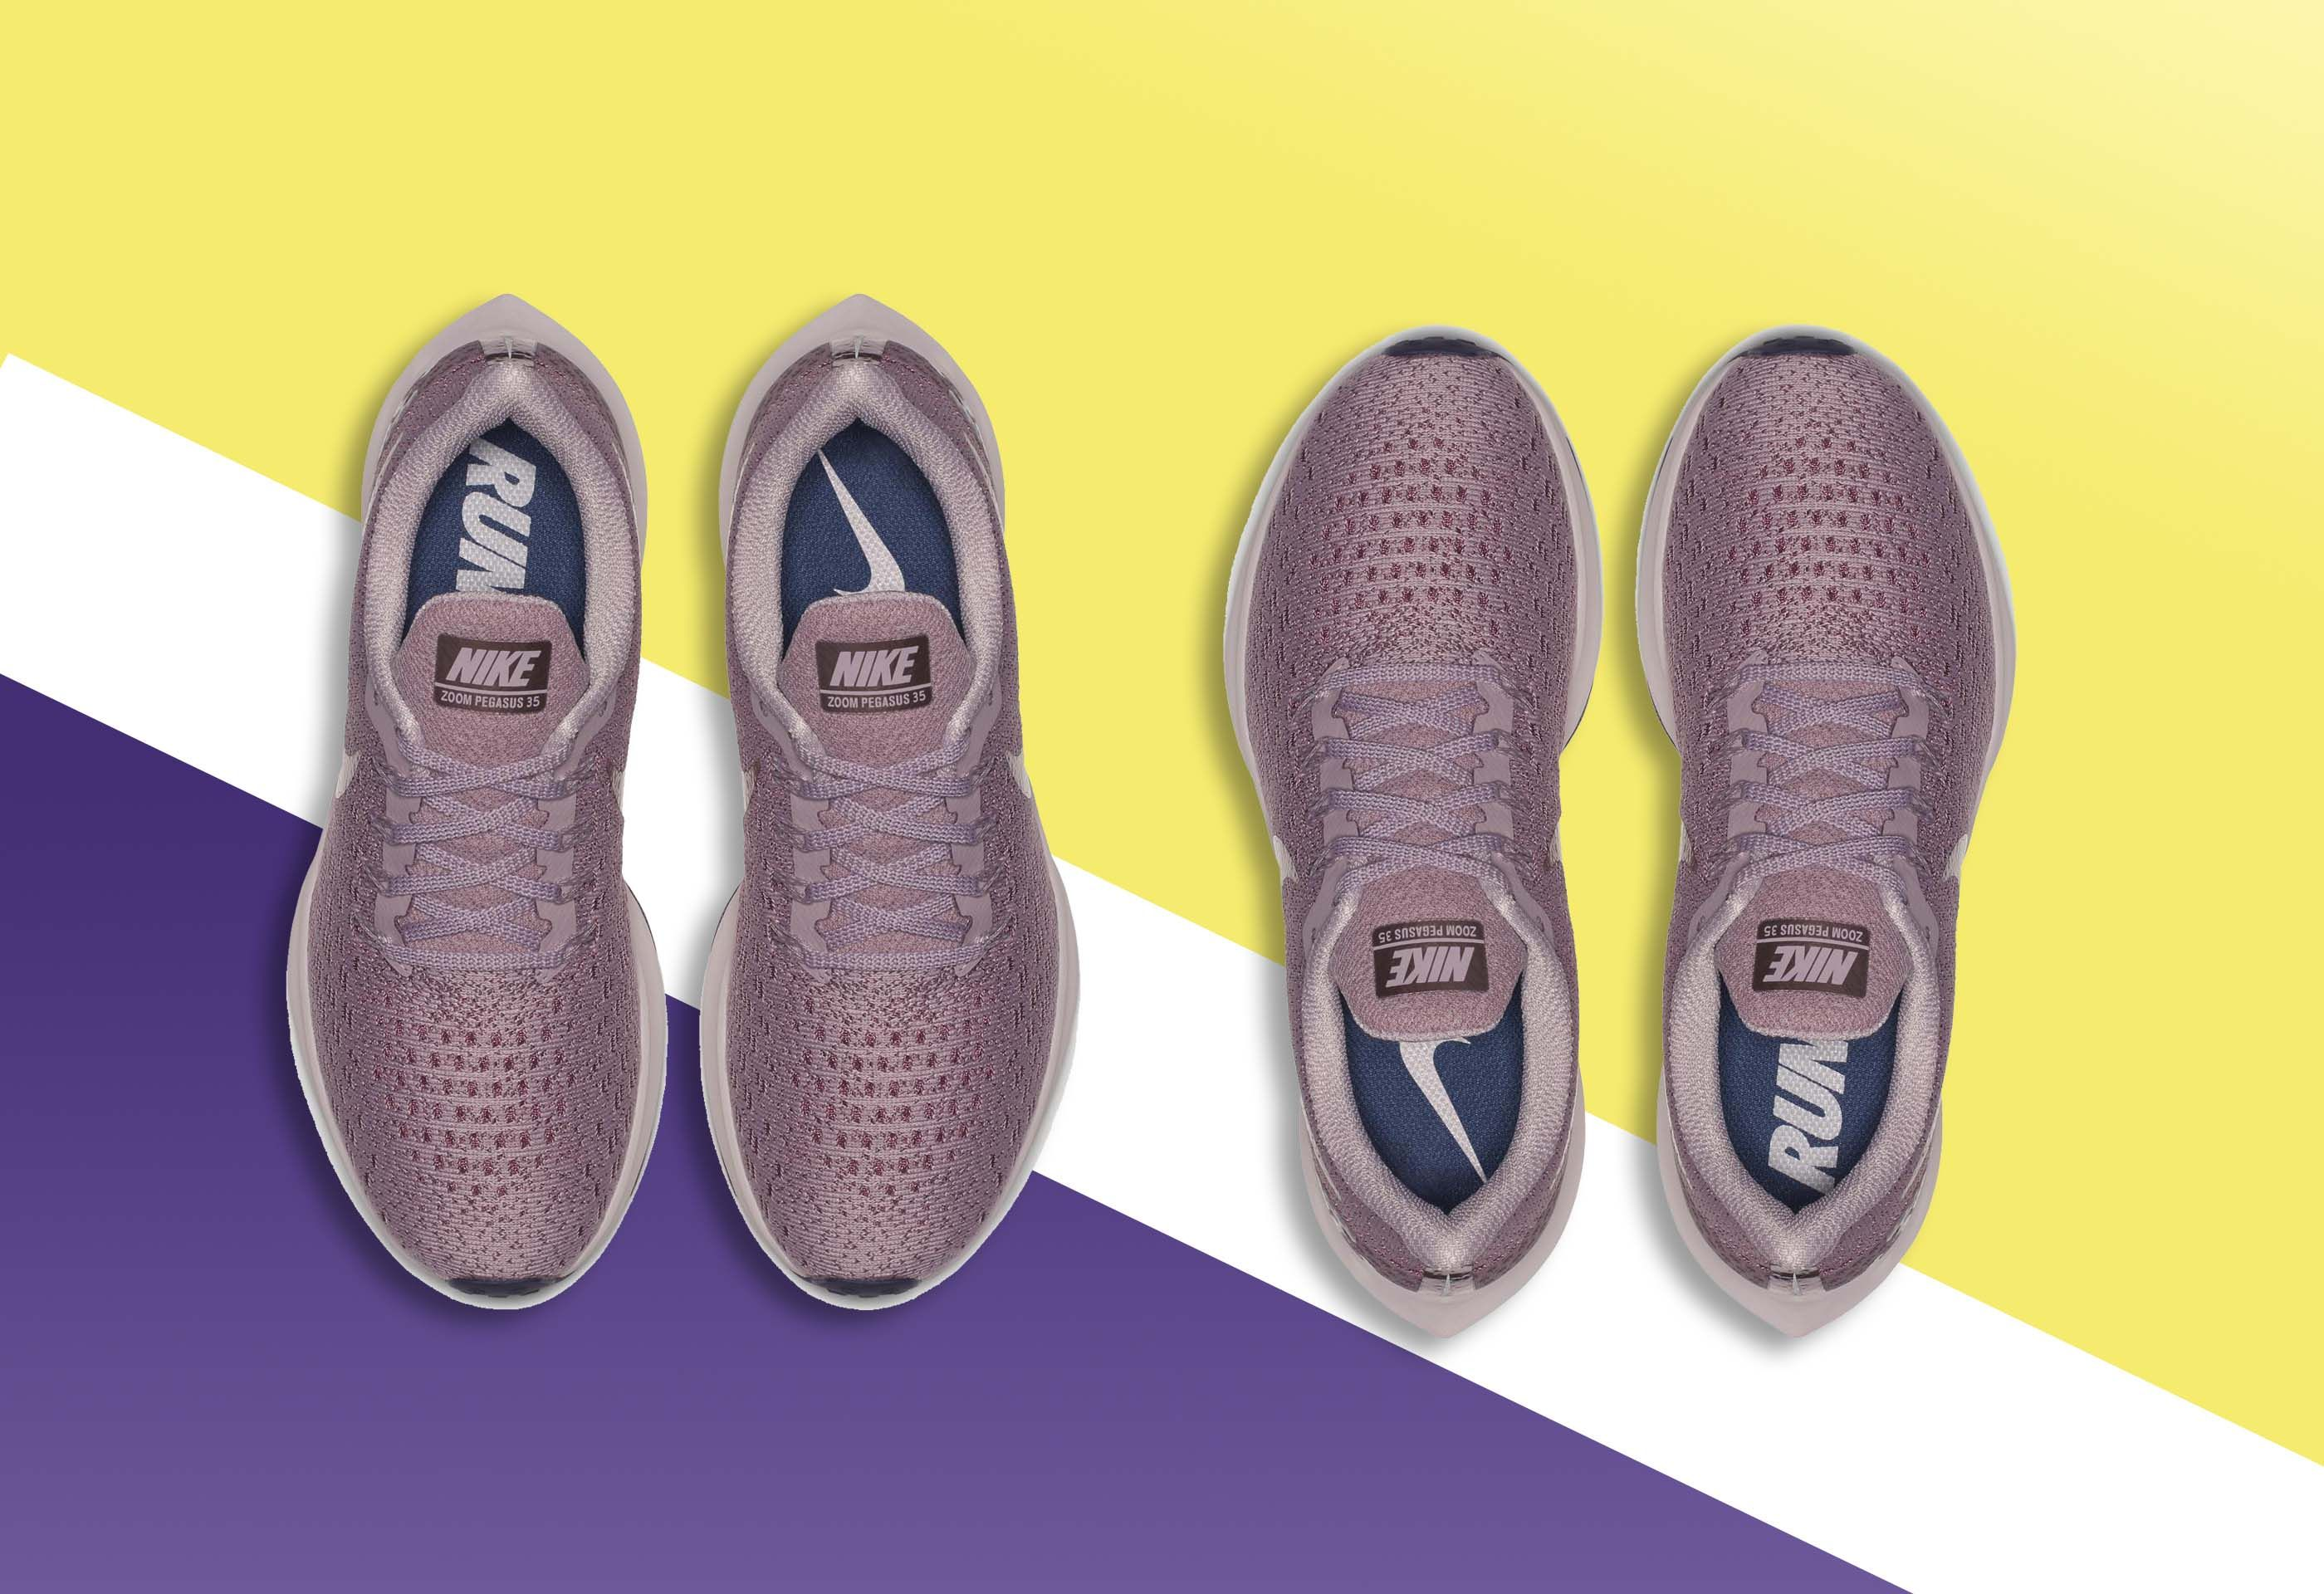 bd7cbd249ba96 Here s how to save over £40 on these award-winning running shoes